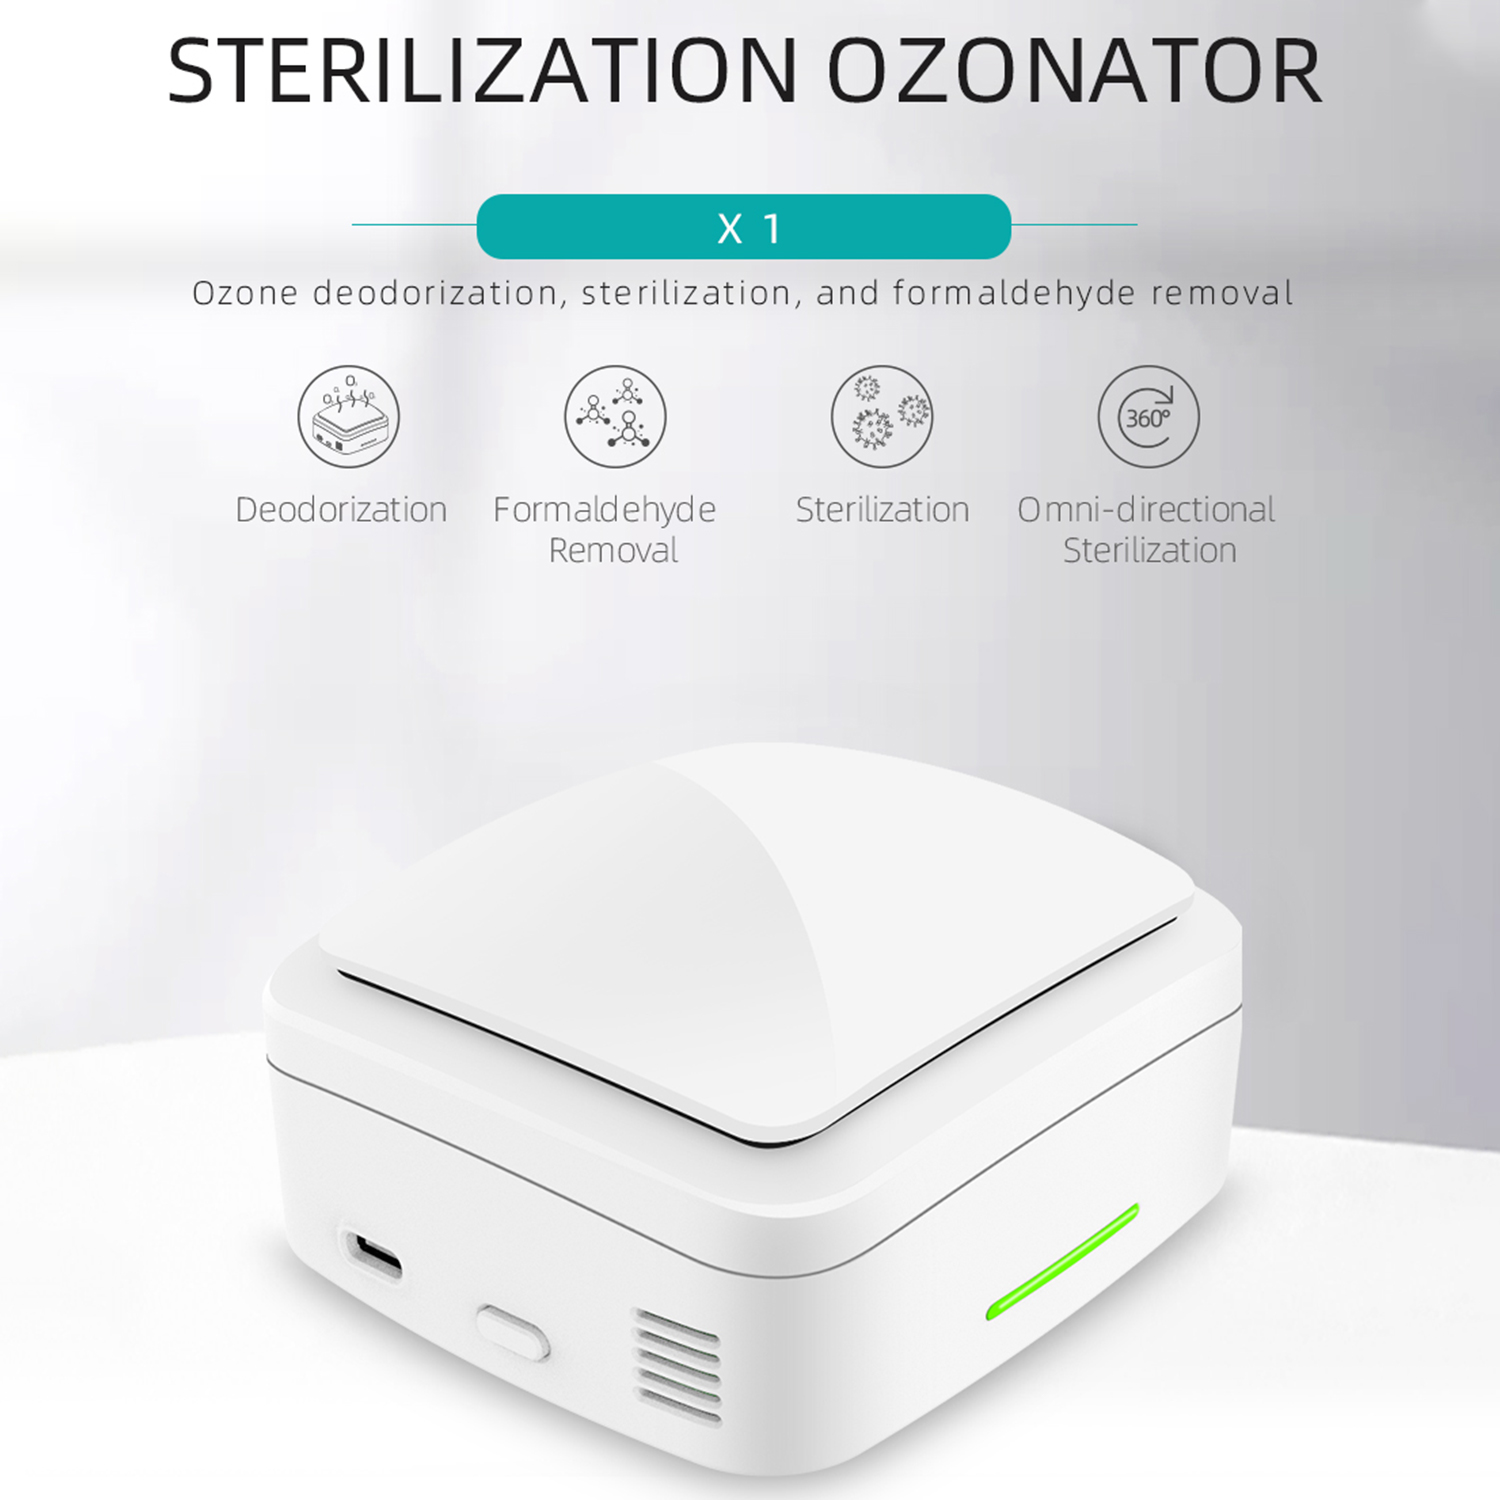 Ozone S-terilizer Household Air Purifier Refrigerator S-terilizer Eliminator Deodorization For Car Office Home Ozone Machine